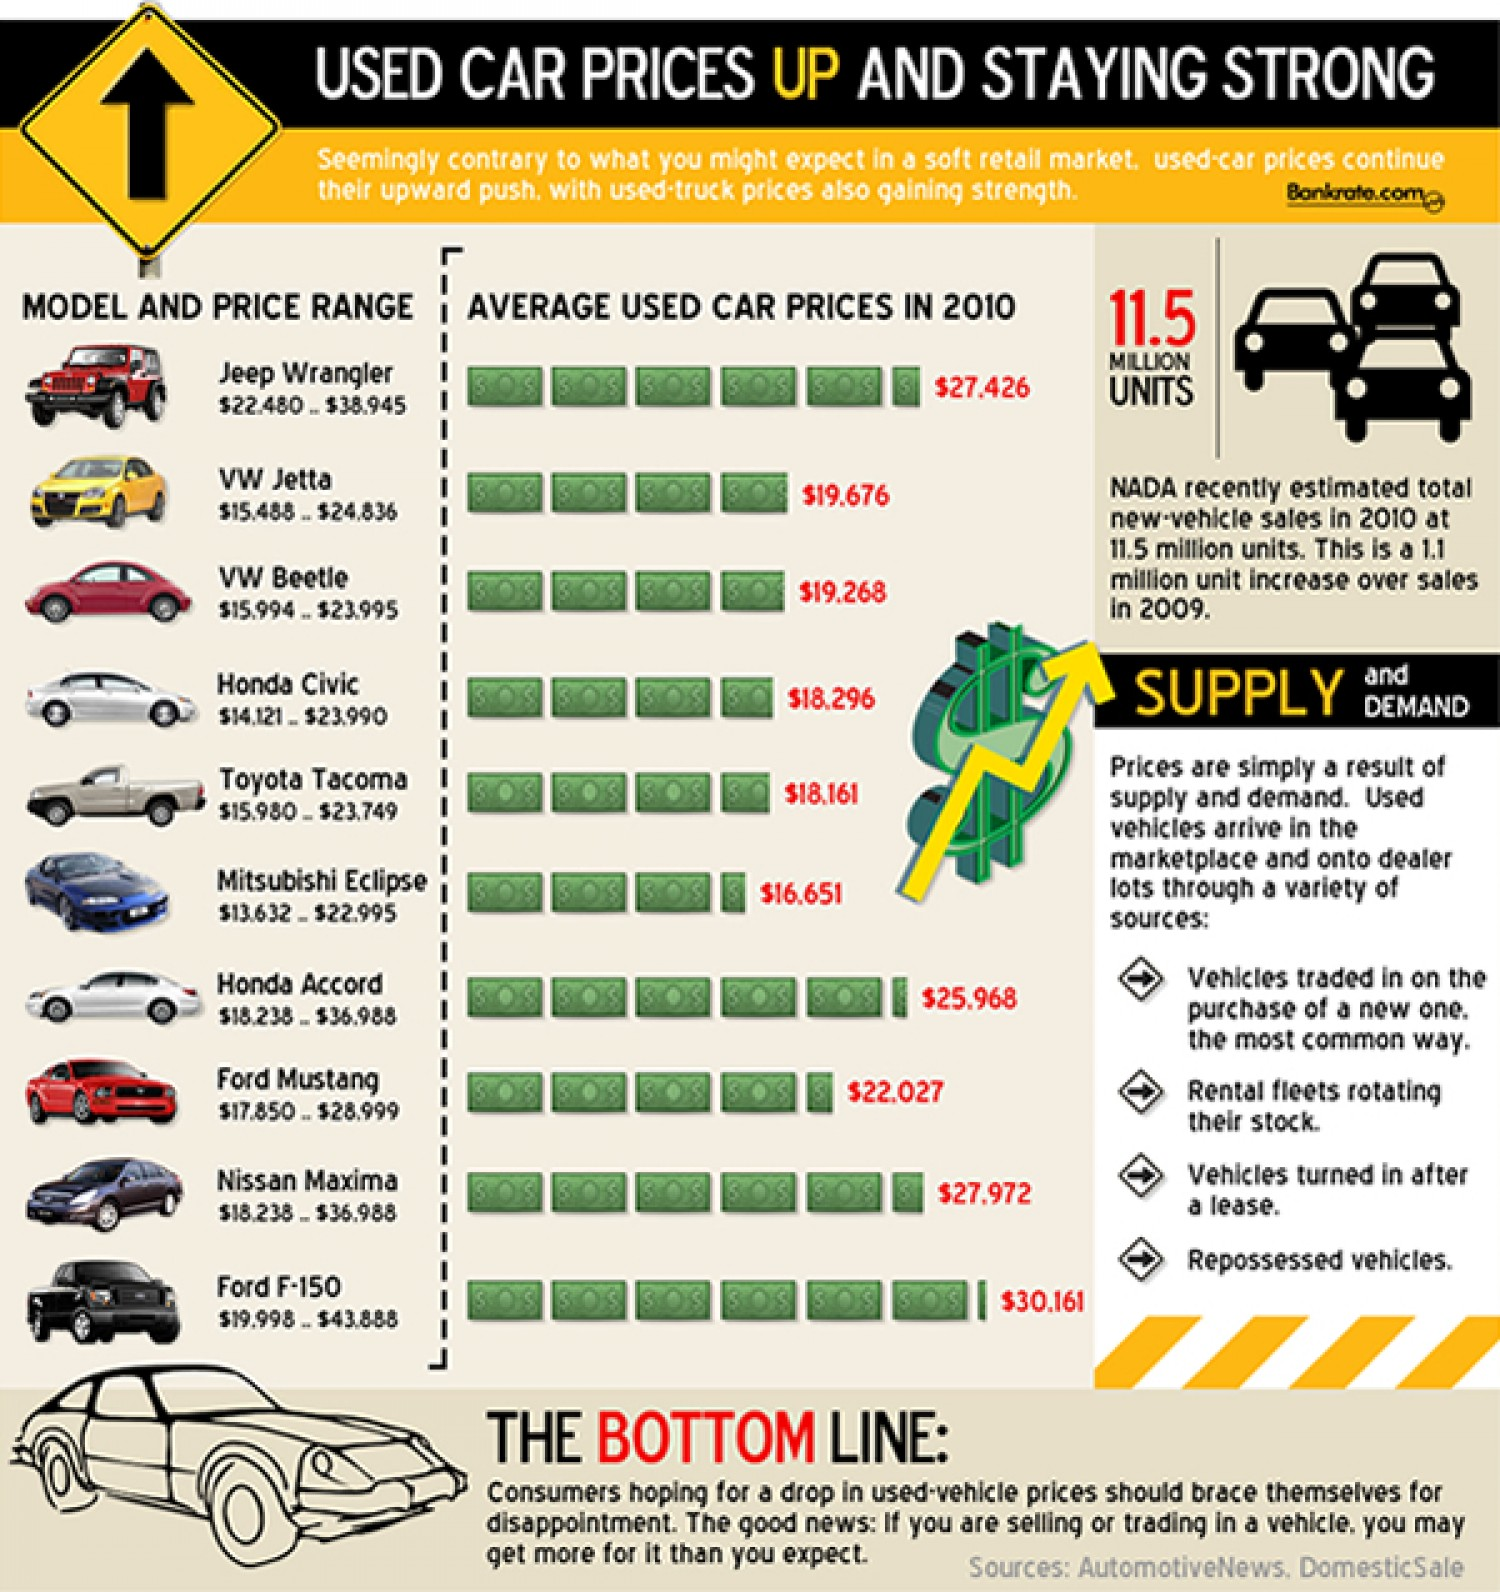 used car prices during the recession infographic